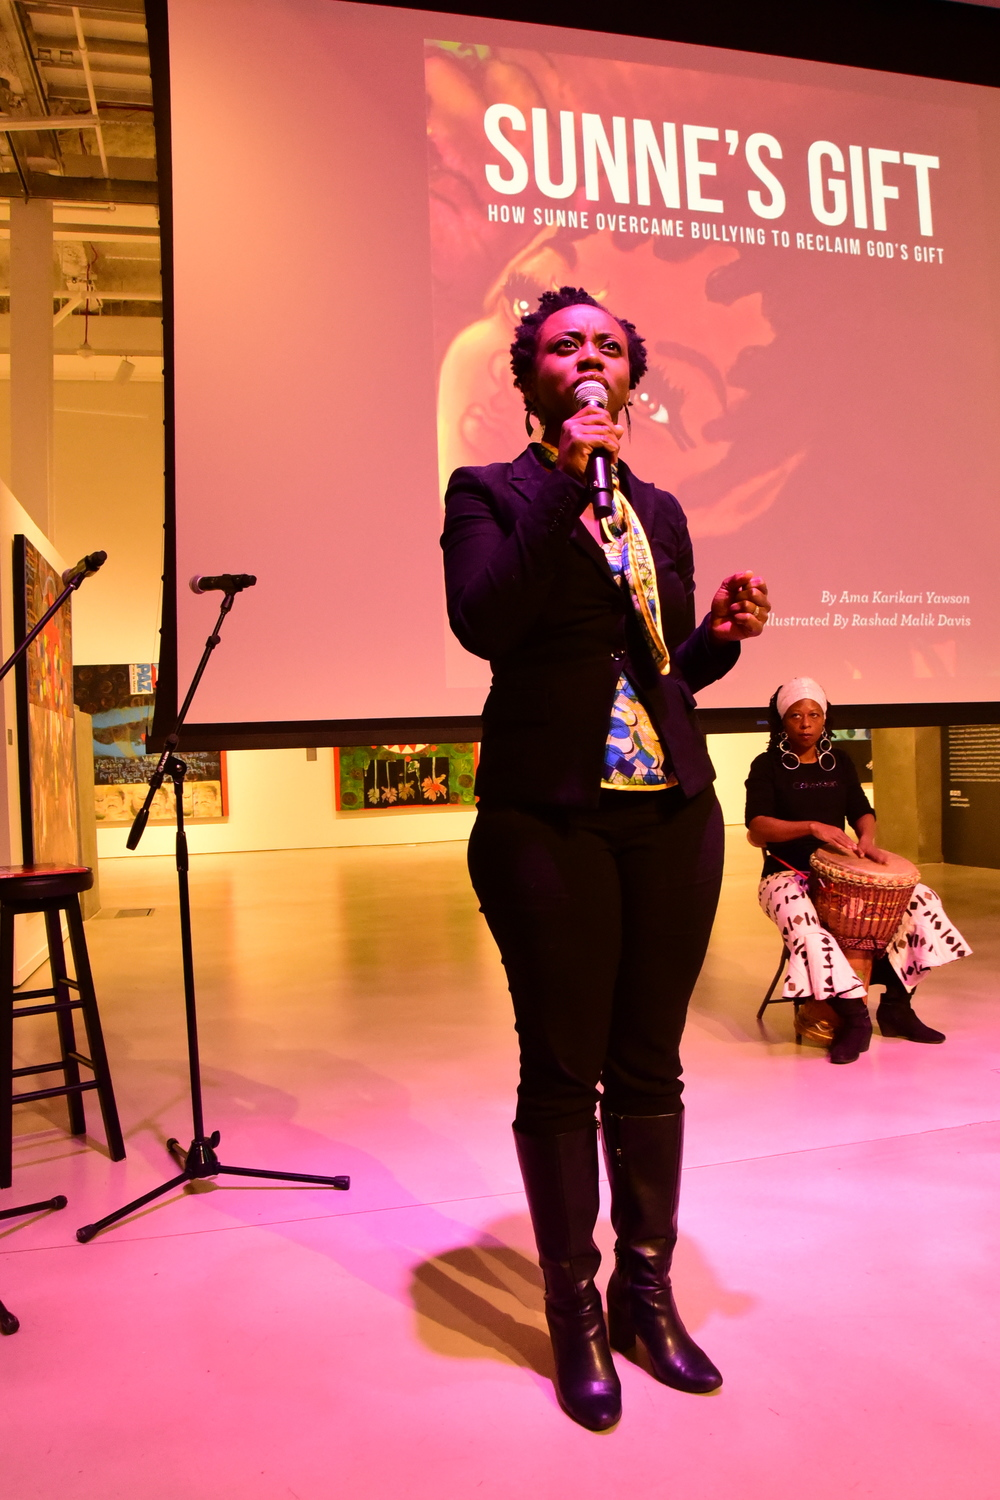 "Artist: Ama KariKari Yawson read insert from her book powerful book ""Sunne's Gift""."